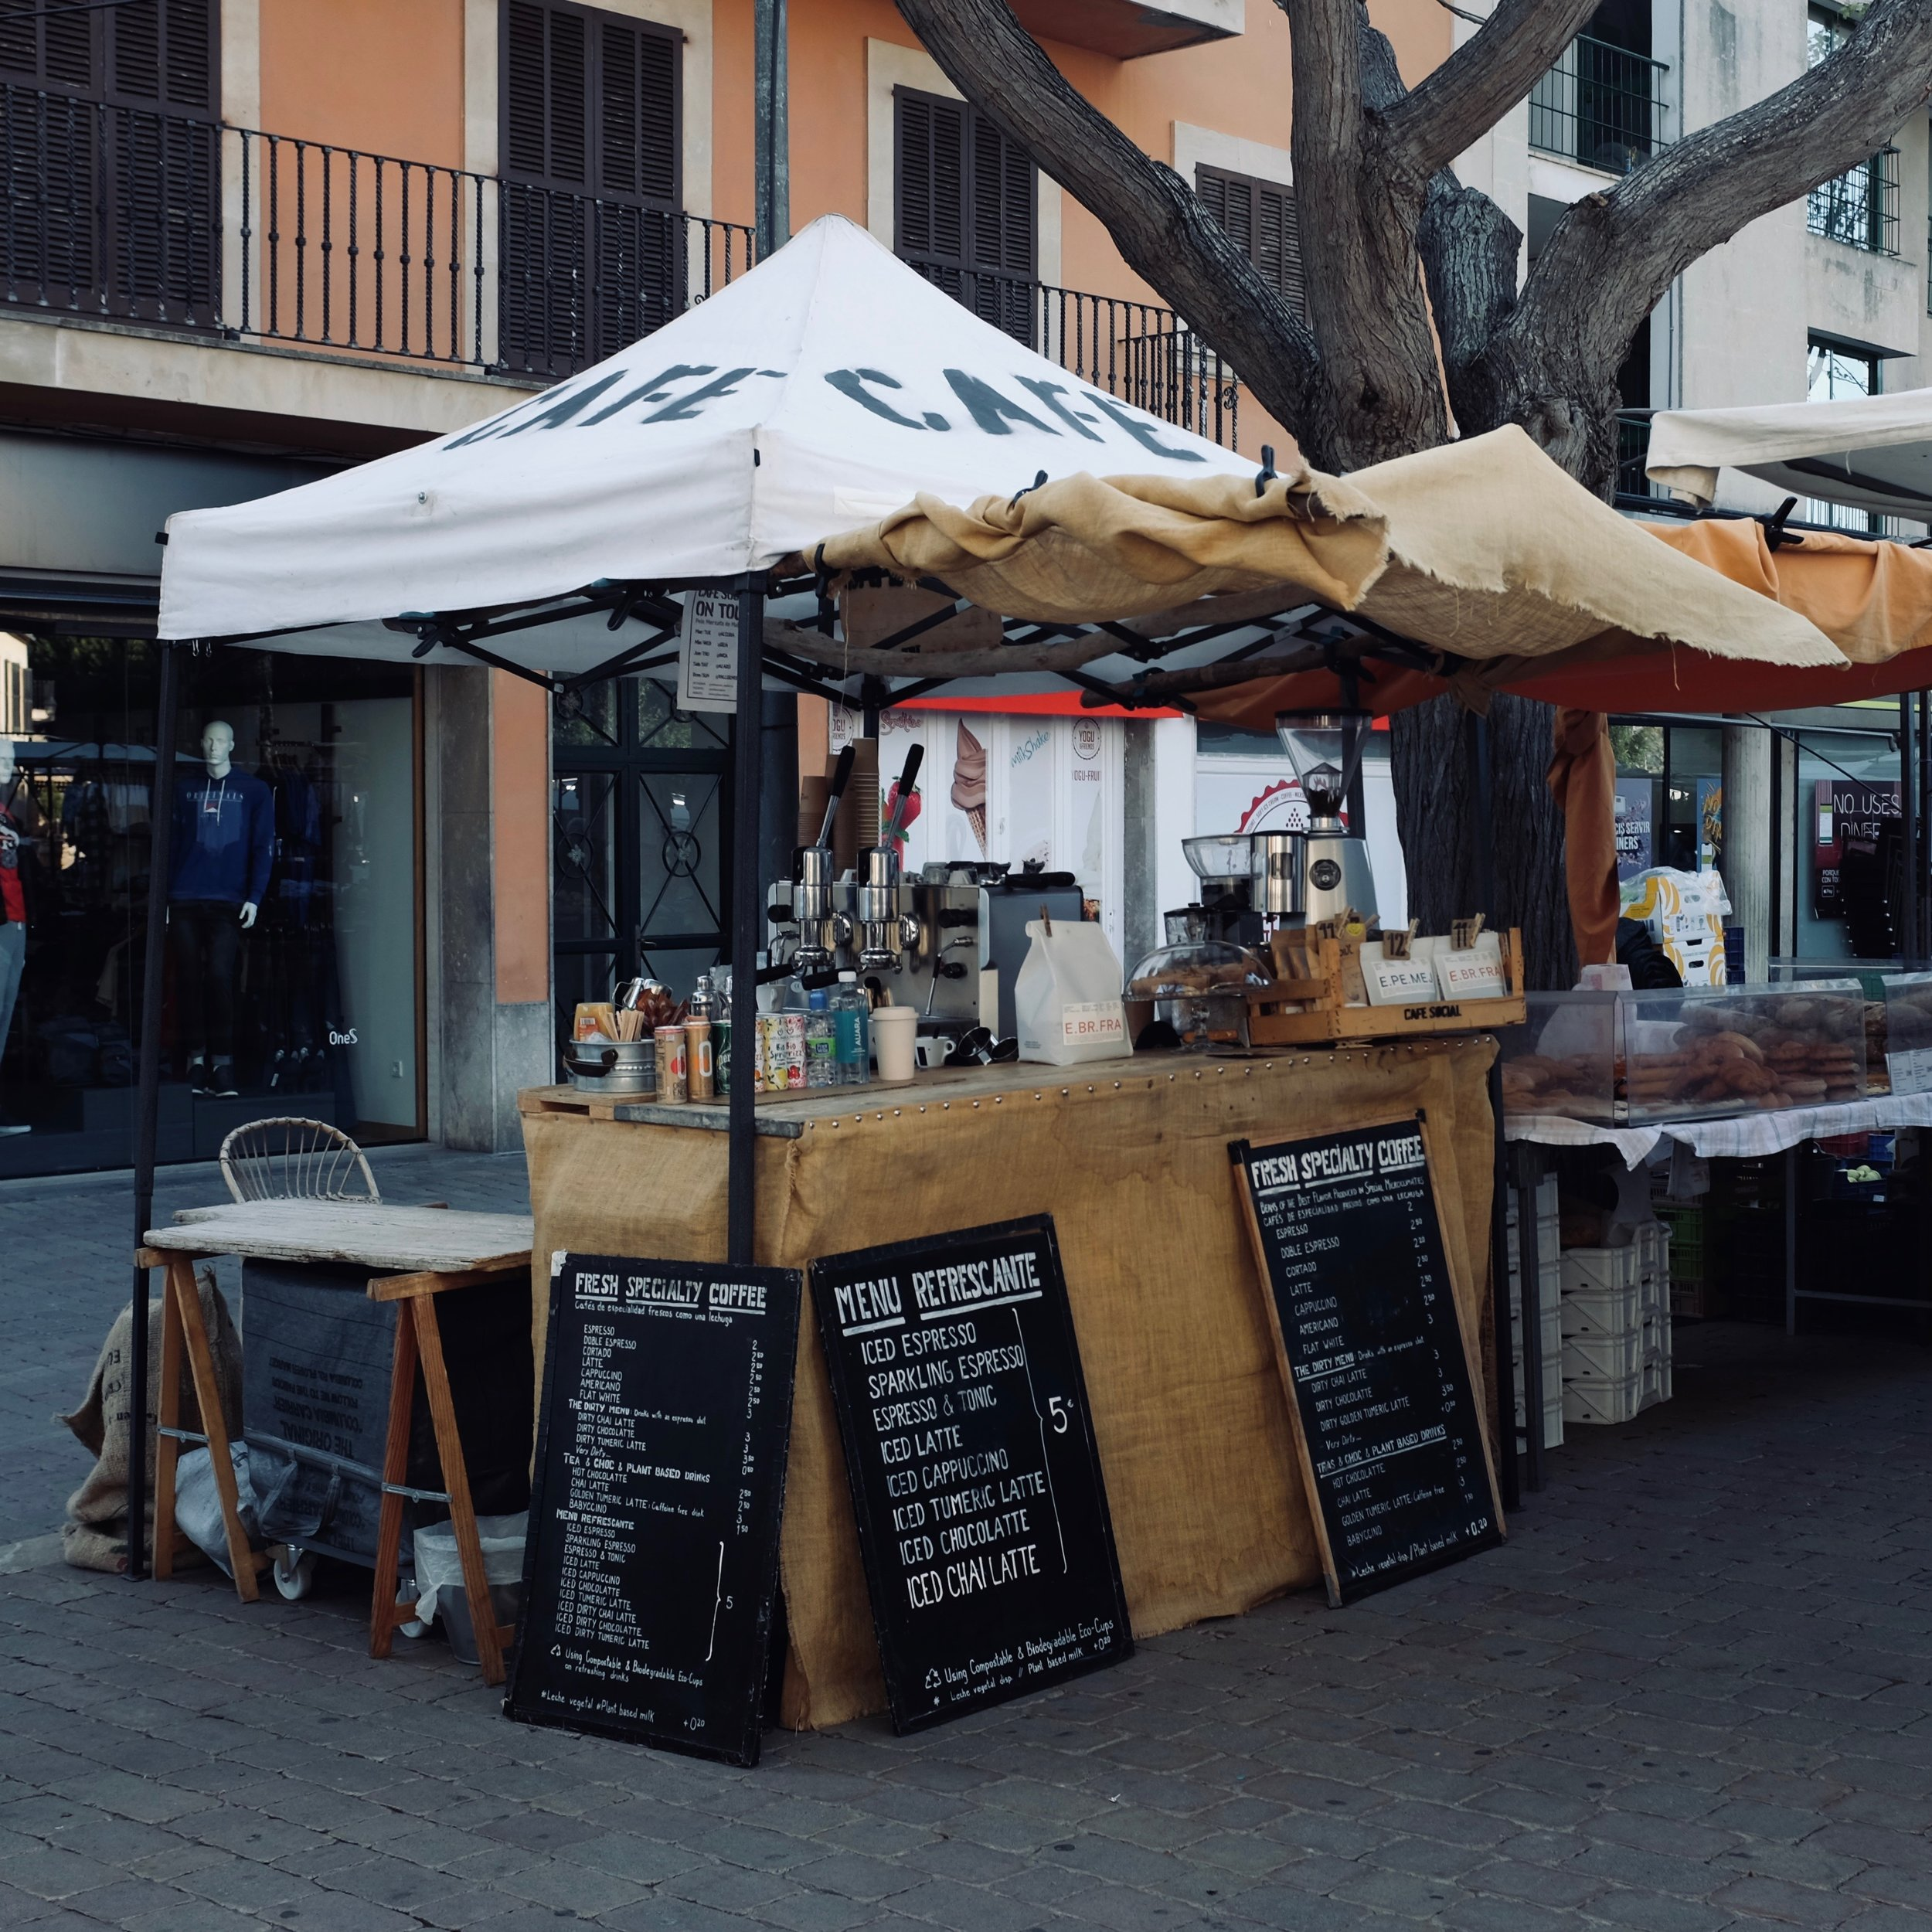 Find CAFE SOCIAL in the main part of the Alcudia Old Town market every Tuesday for your fresh speciality coffee